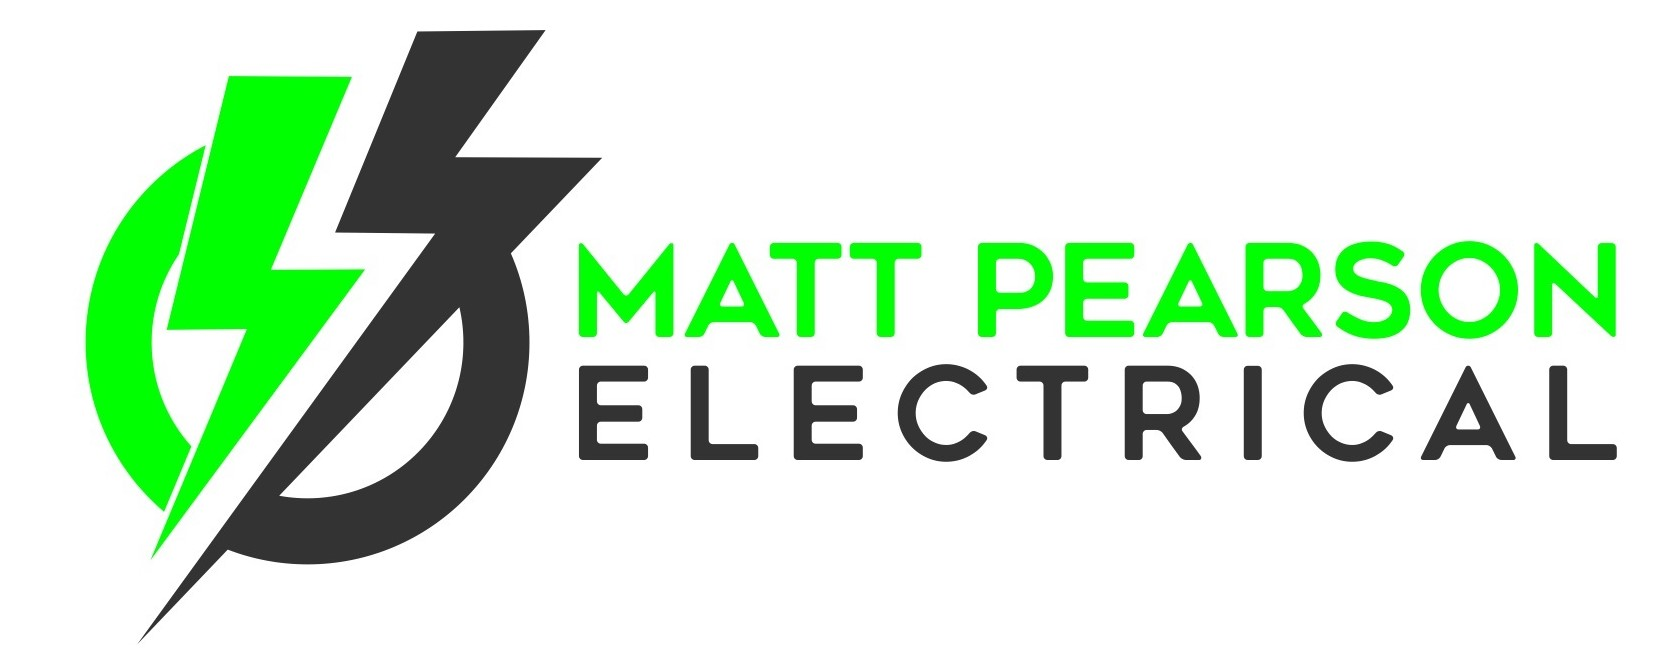 Matt Pearson Electrical – Electrician Maitland Newcastle Hunter Valley Logo